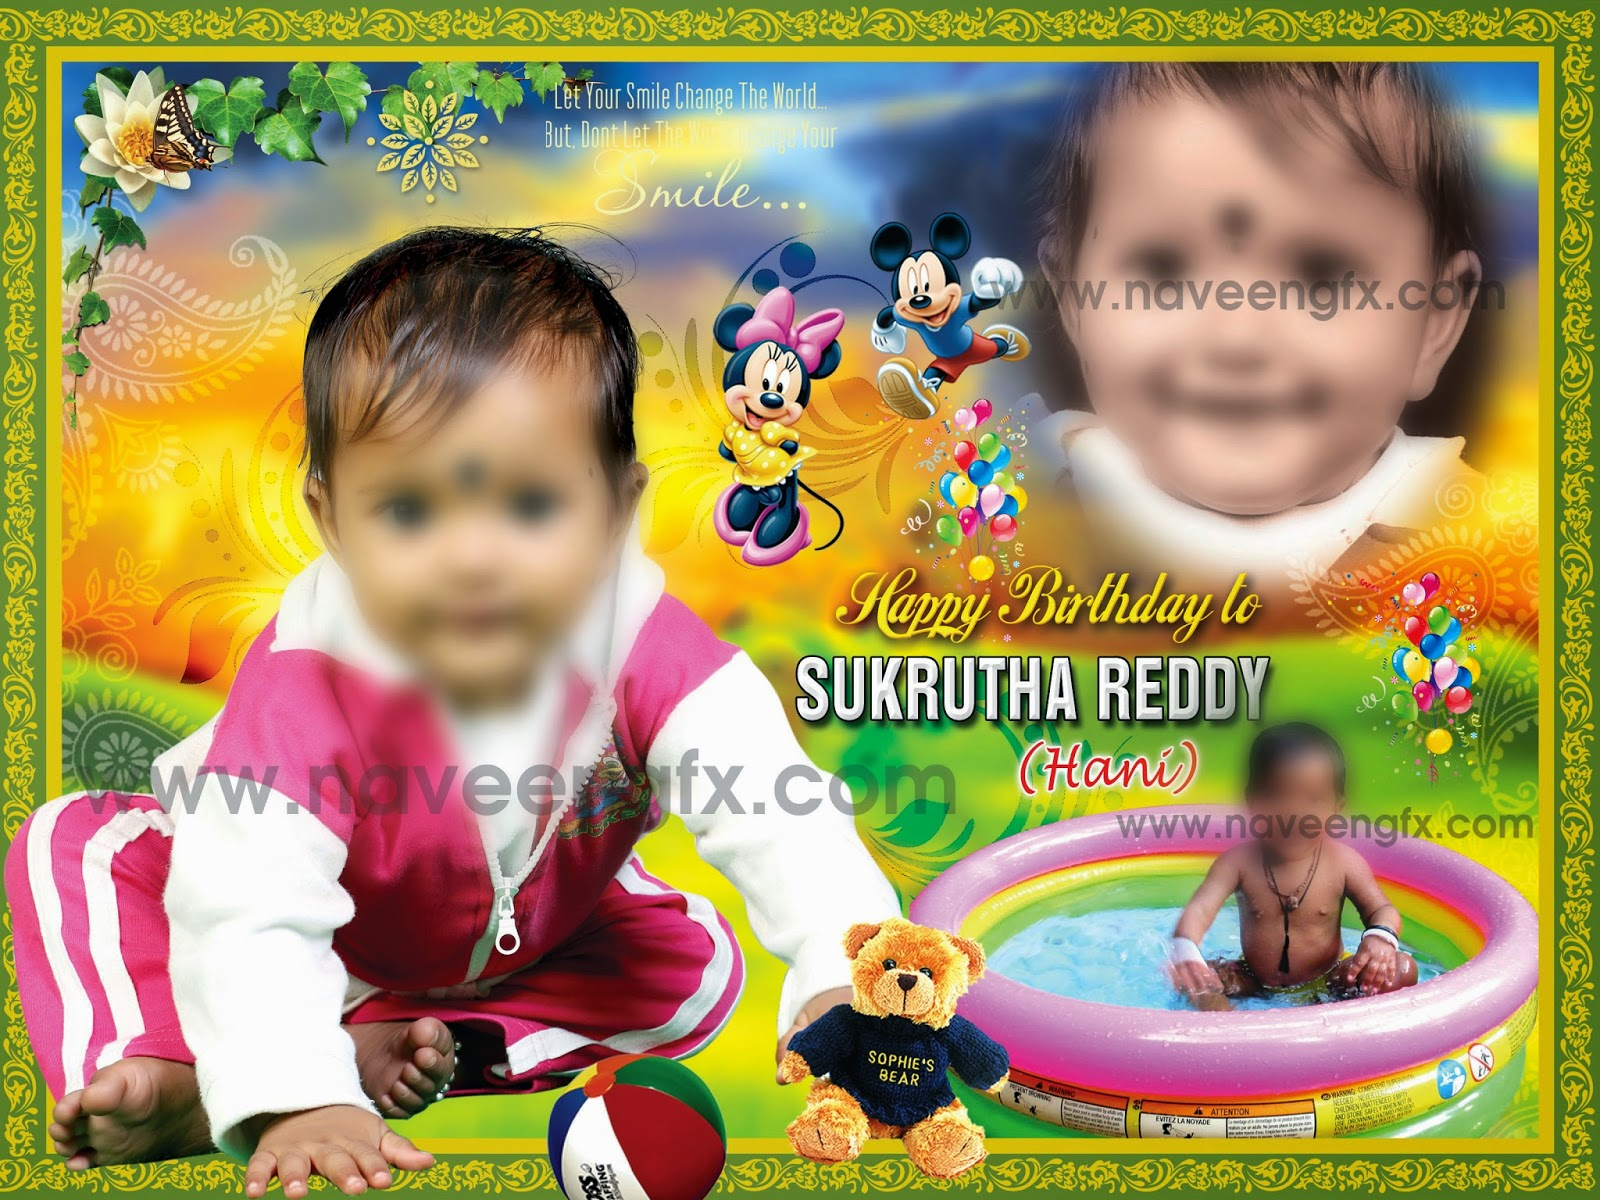 kids birthday invitations templates design | naveengfx